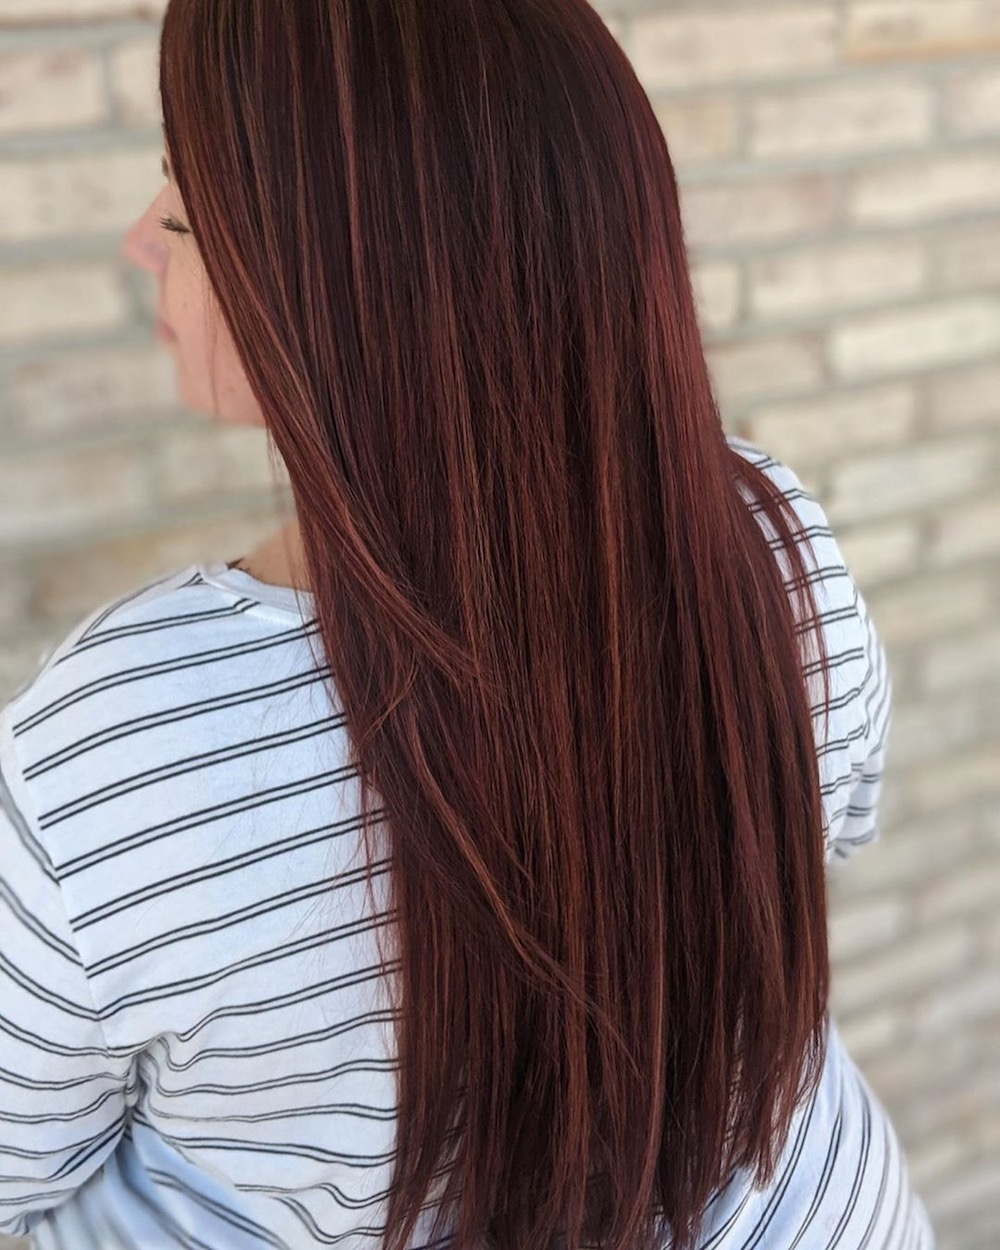 Best Orchard Red Hair Color Ideas   theFashionSpot